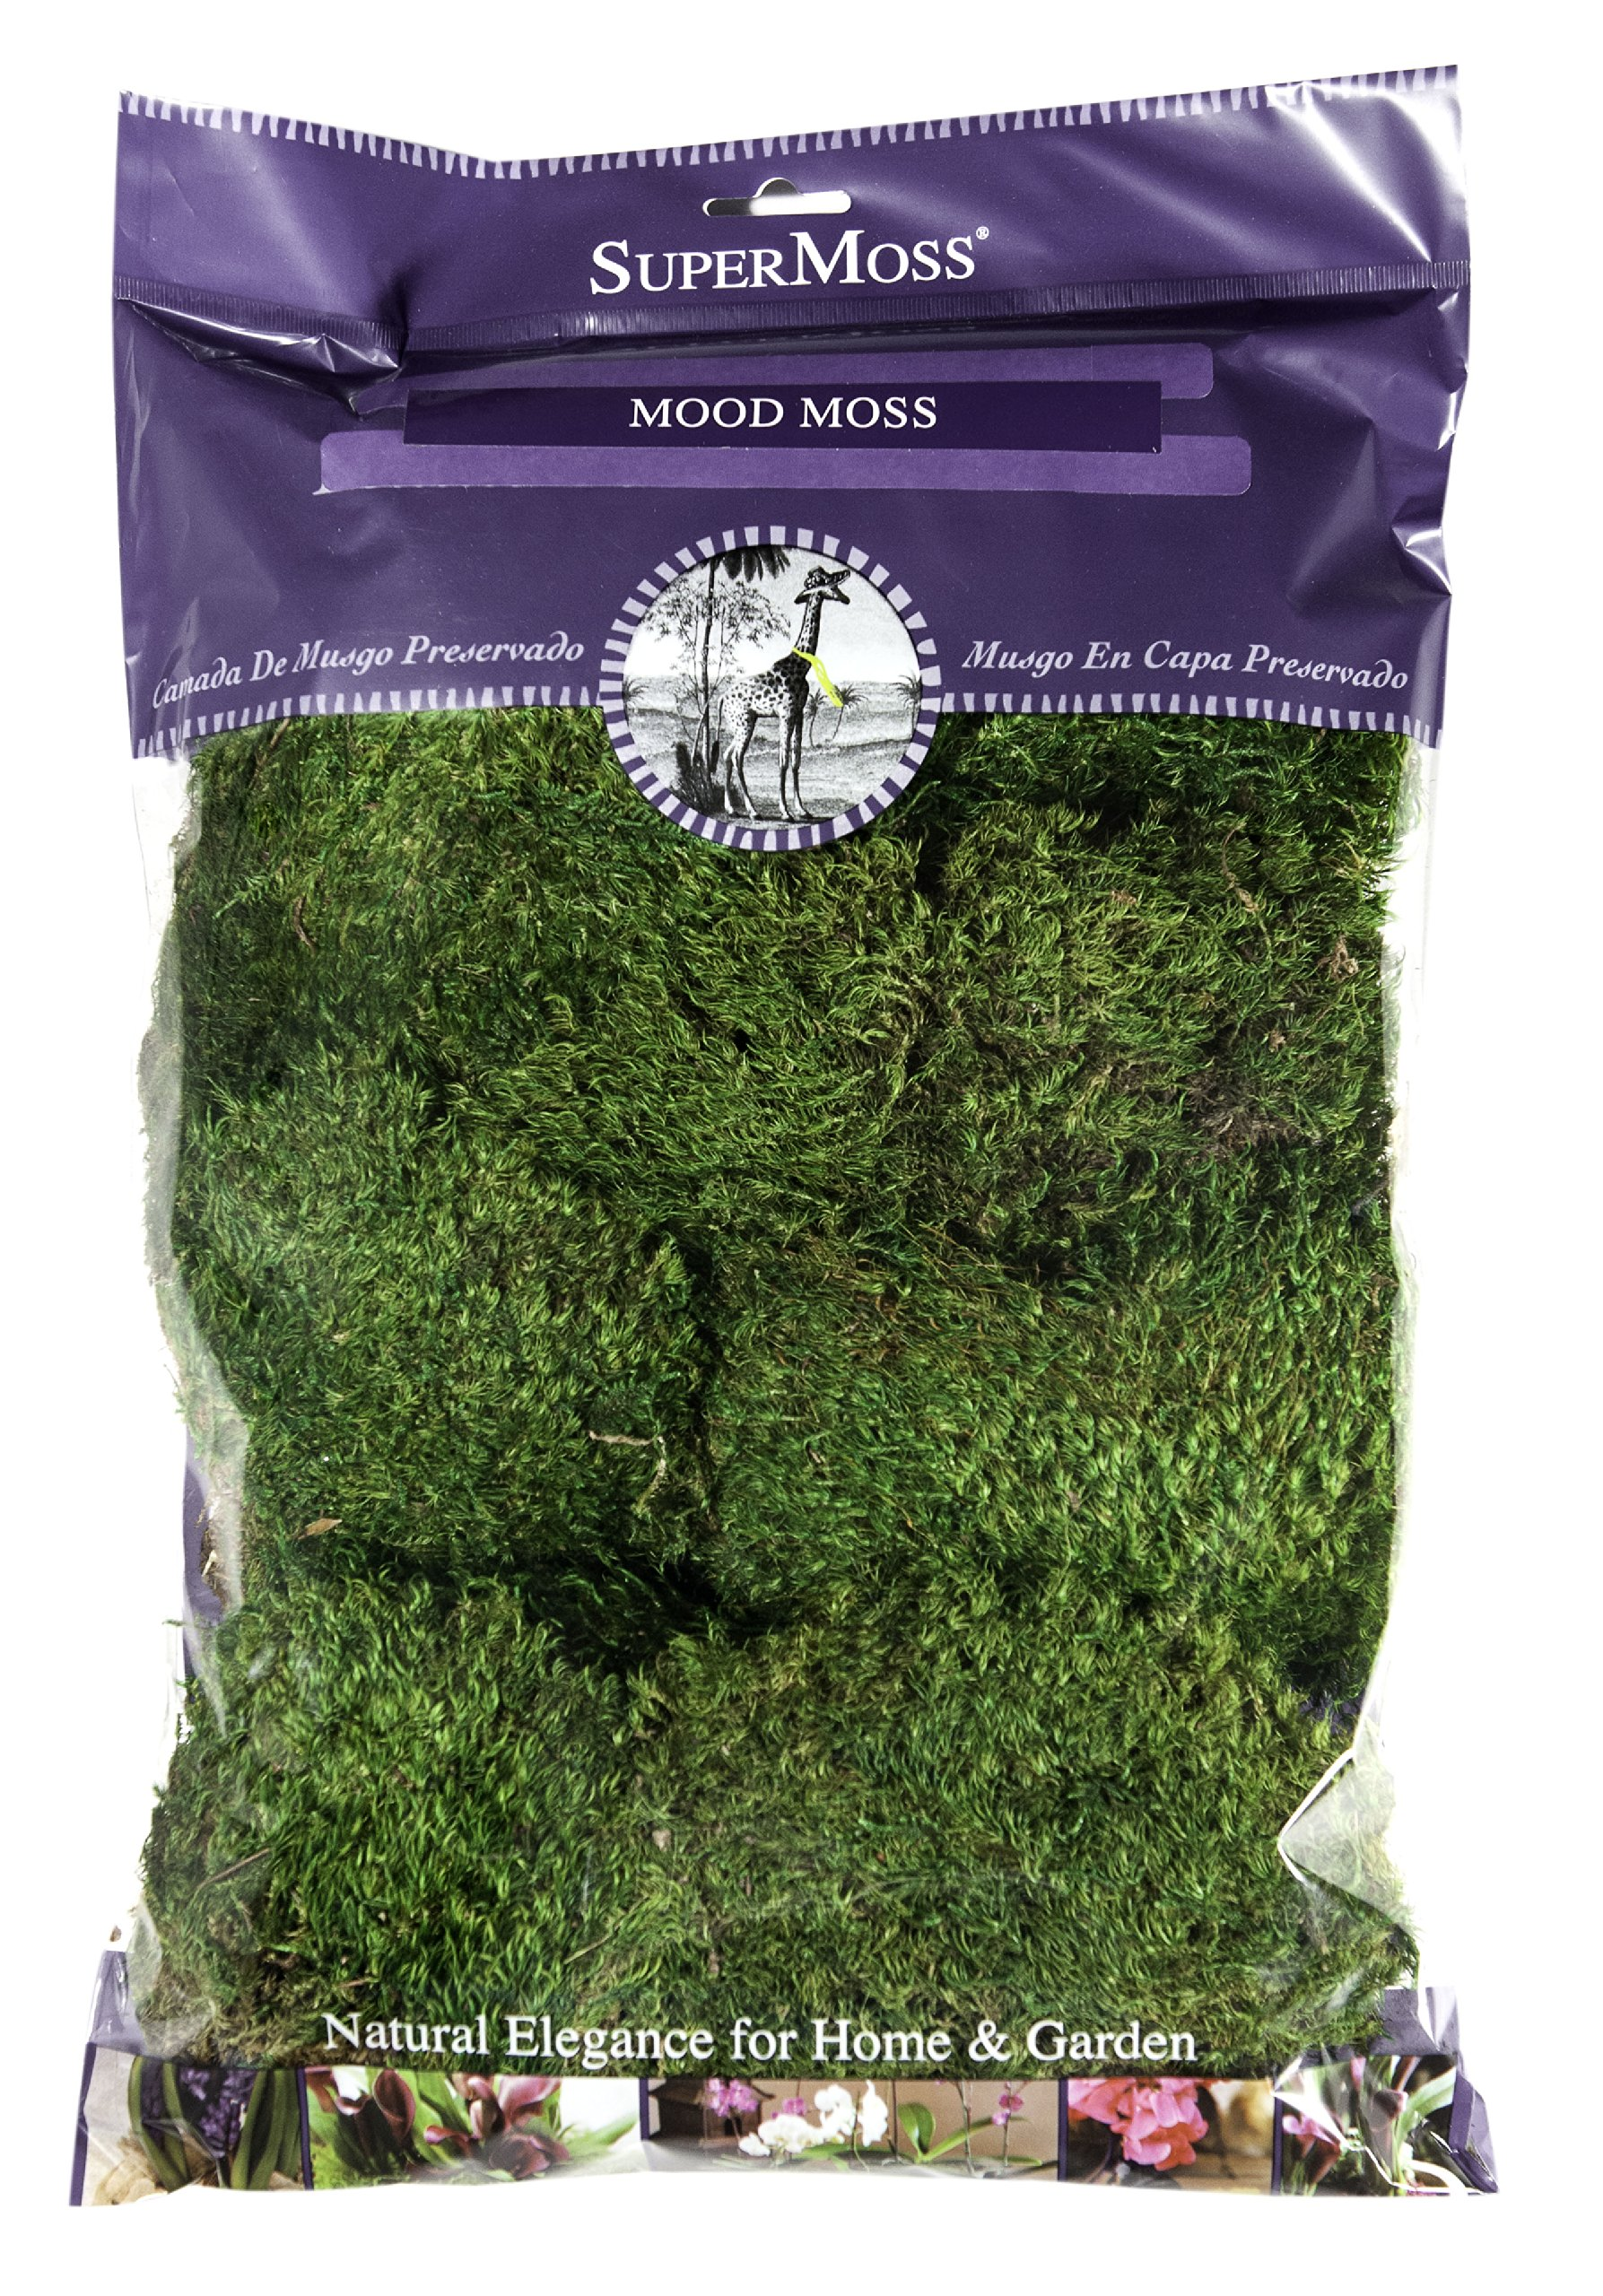 Supermoss Mood Moss Preserved Natural Green 1200cuin